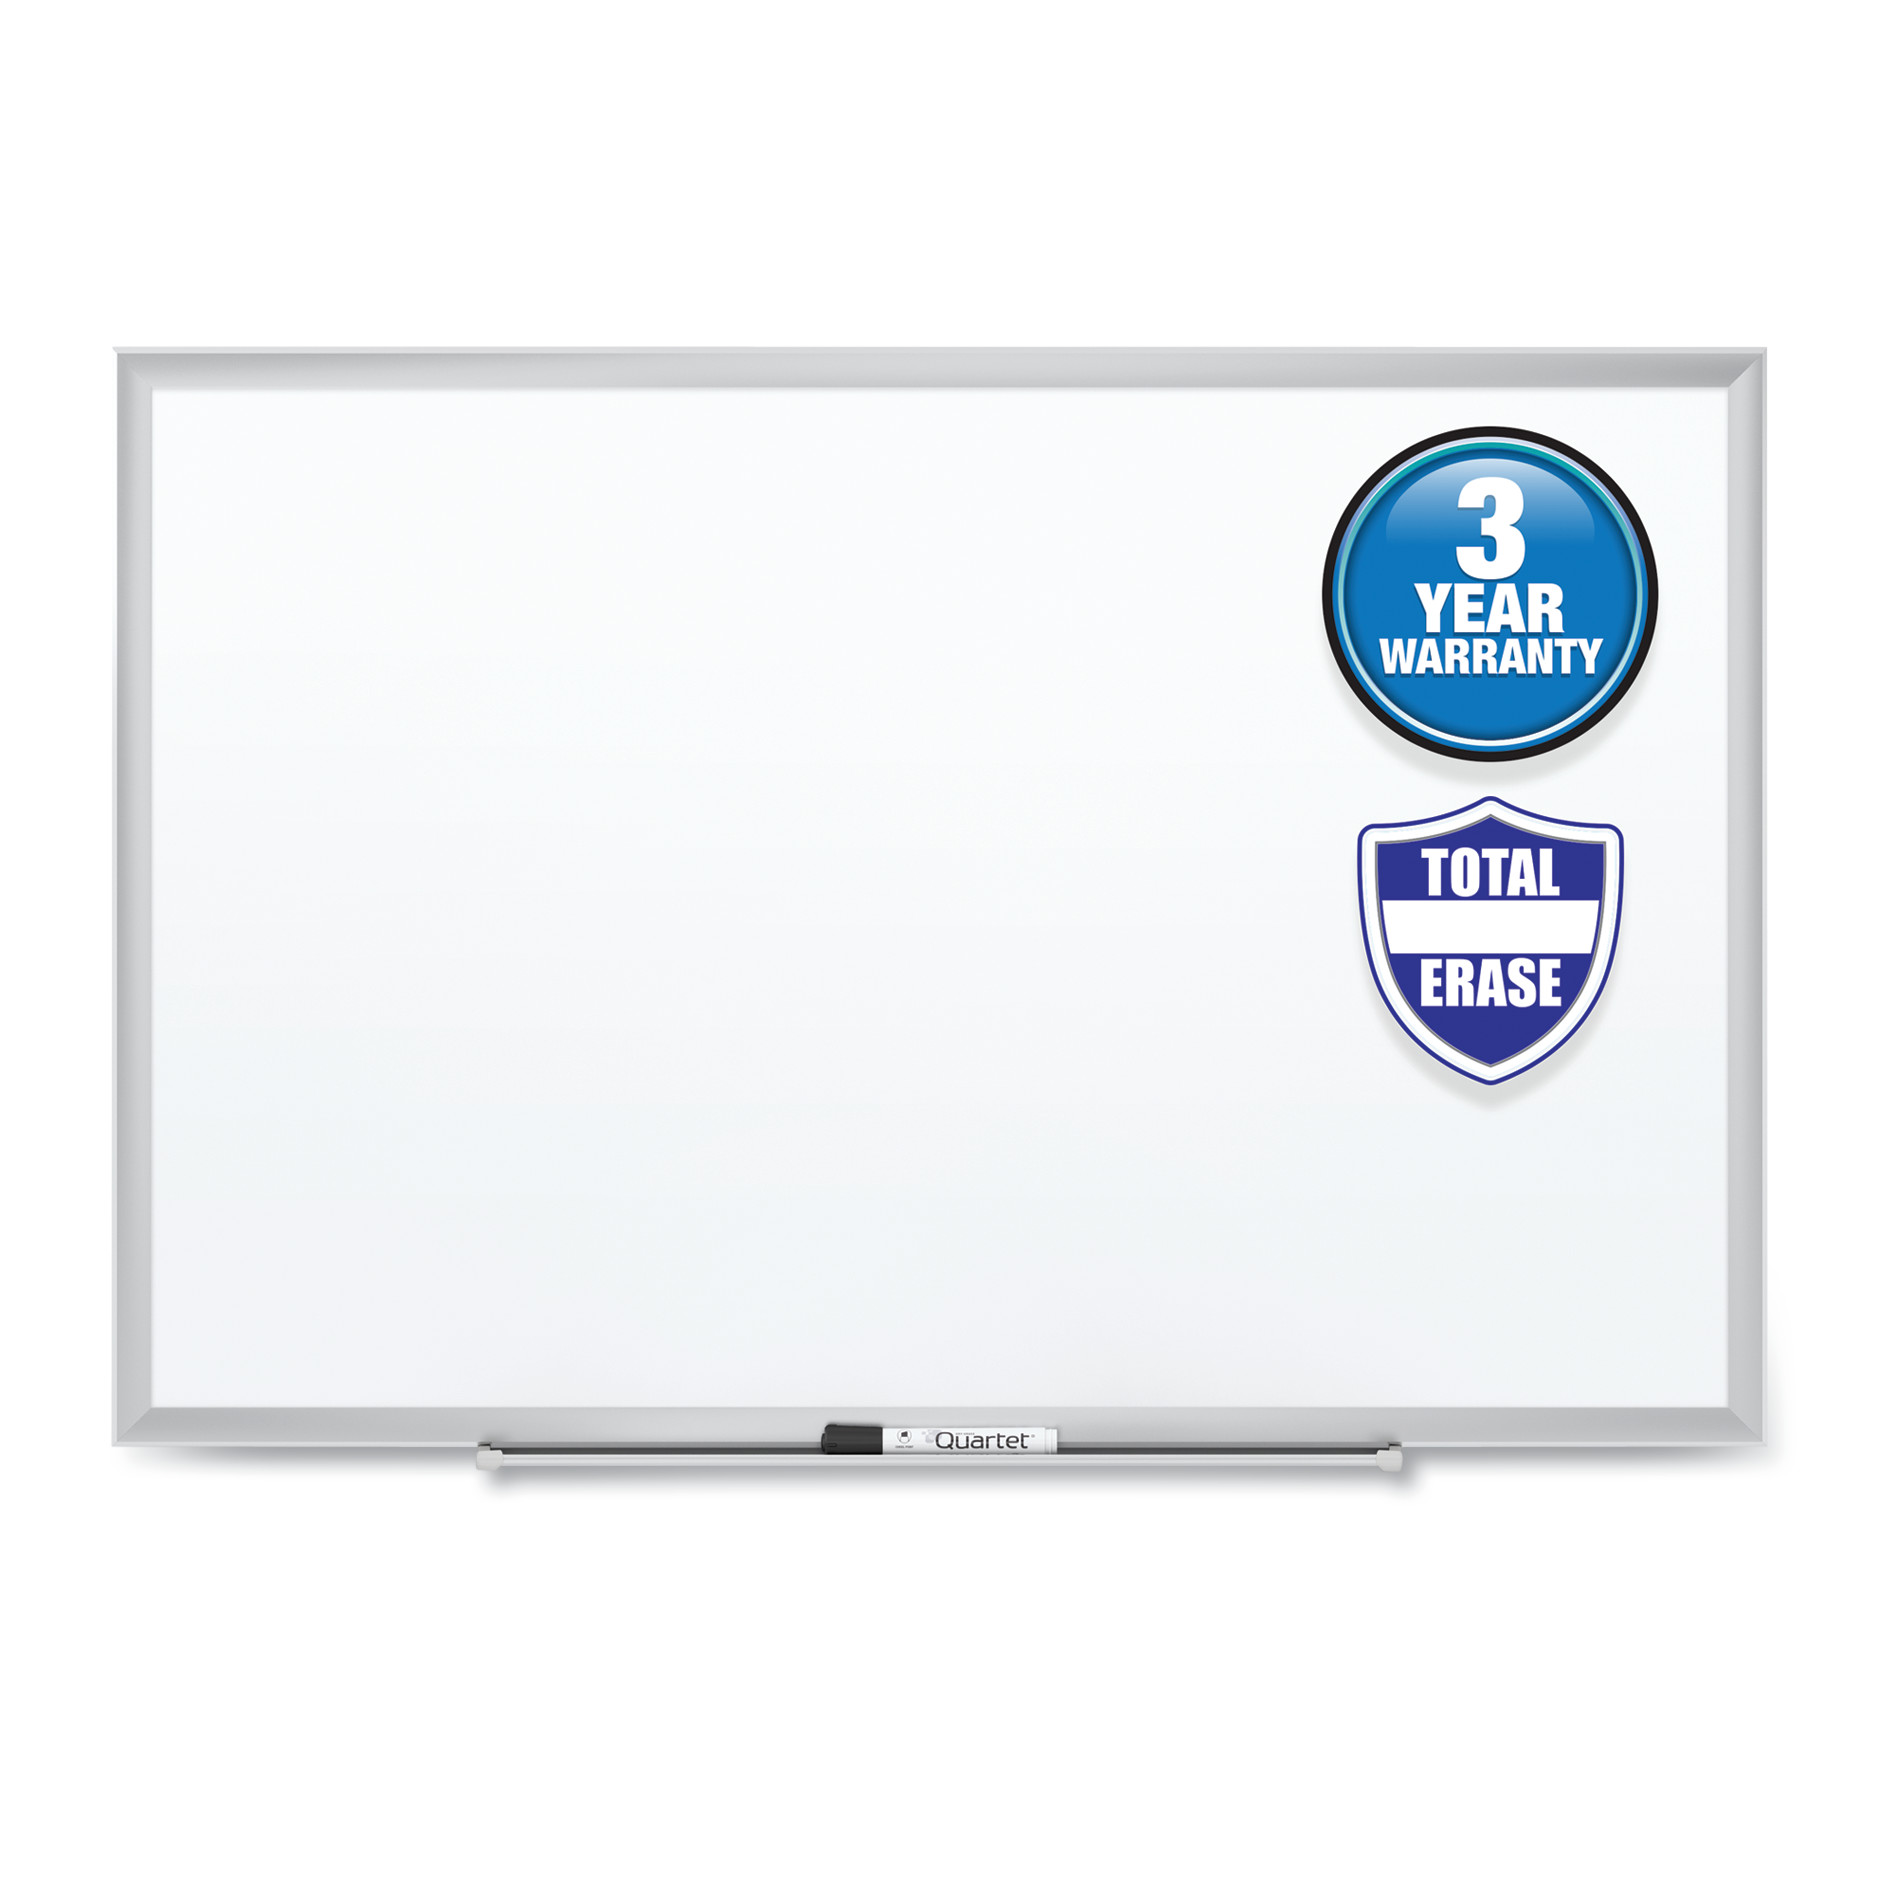 Picture of Classic Series Total Erase Dry Erase Board, 60 x 36, Silver Aluminum Frame